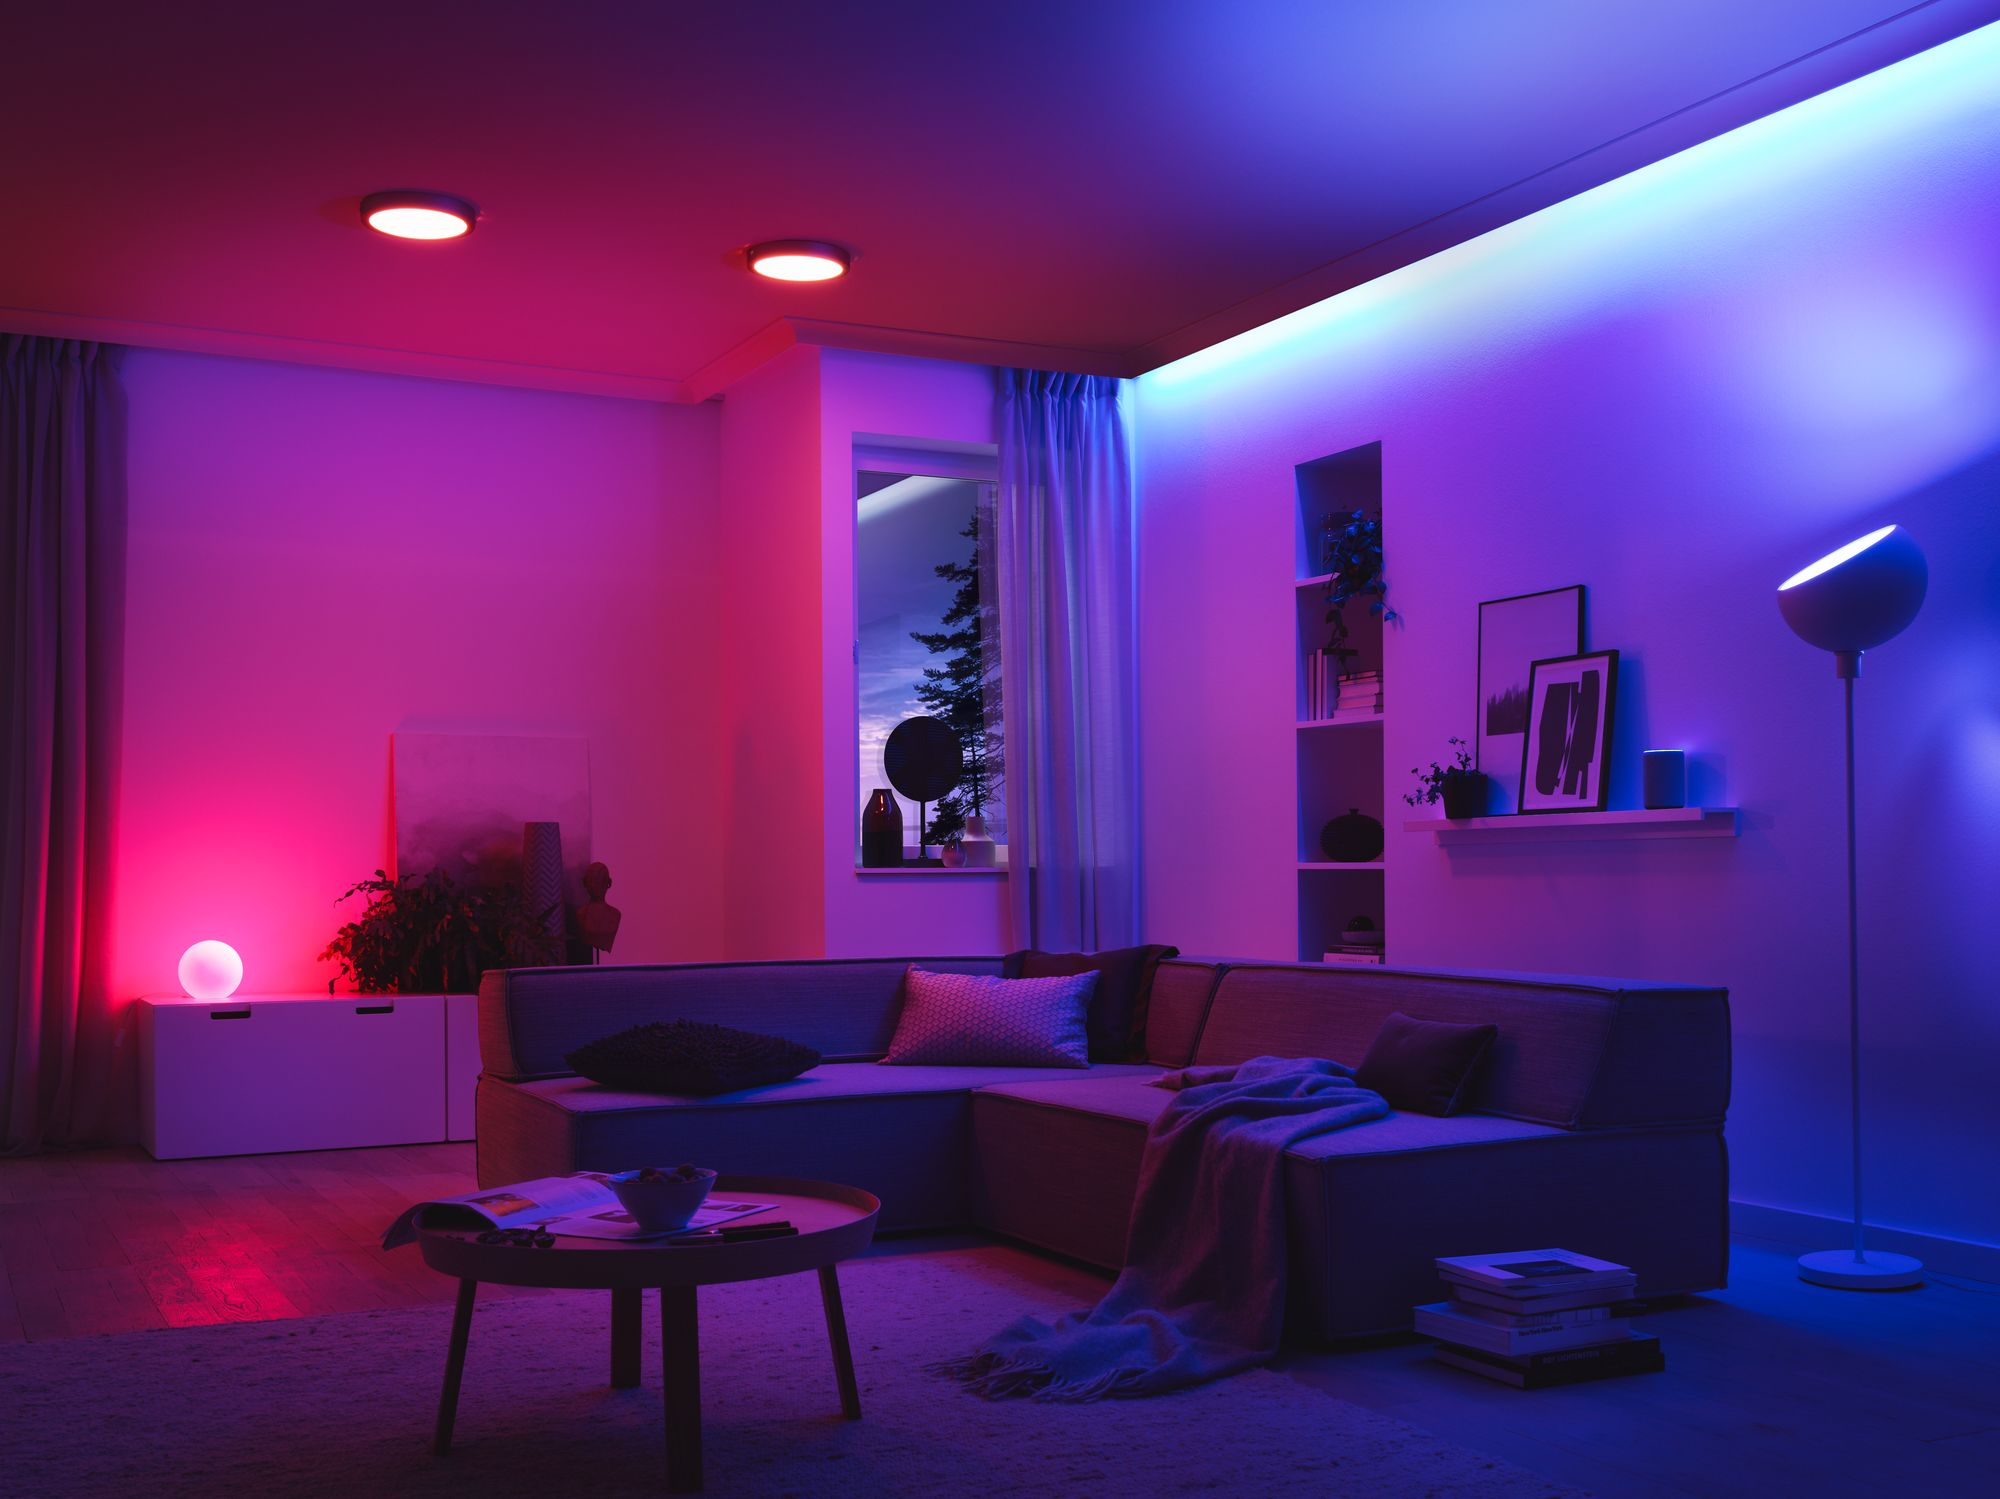 Your Next Light Bulb should be a Color Changing Light Bulb